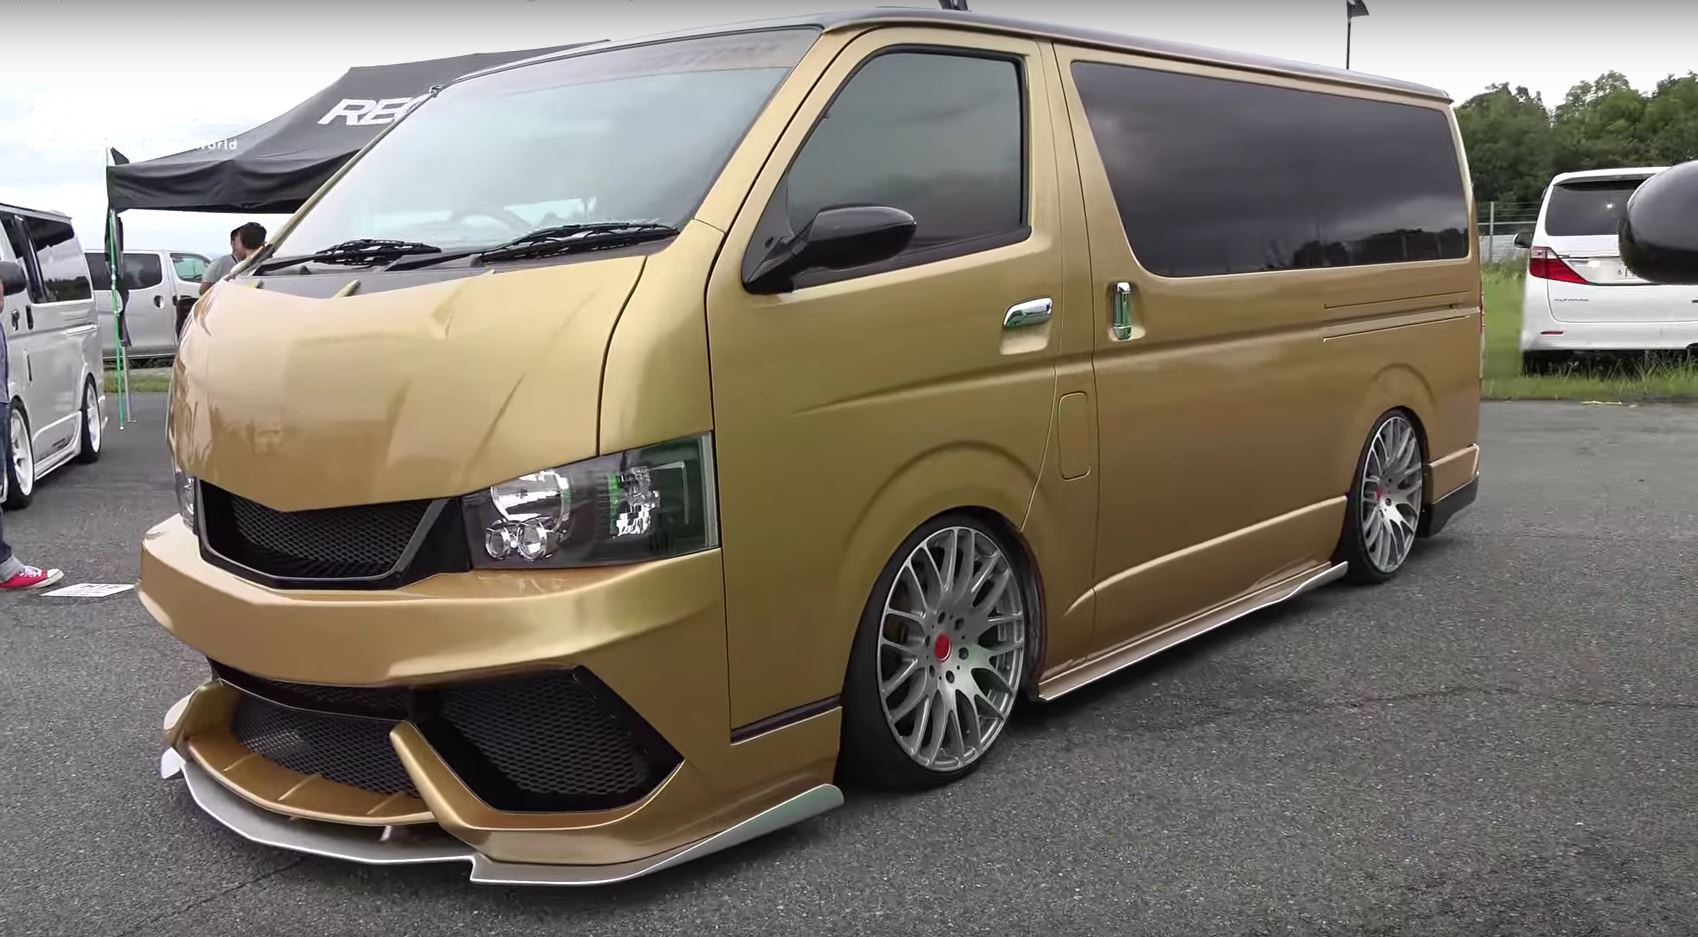 two toyota hiace vans get lamborghini bumpers and paint autoevolution. Black Bedroom Furniture Sets. Home Design Ideas